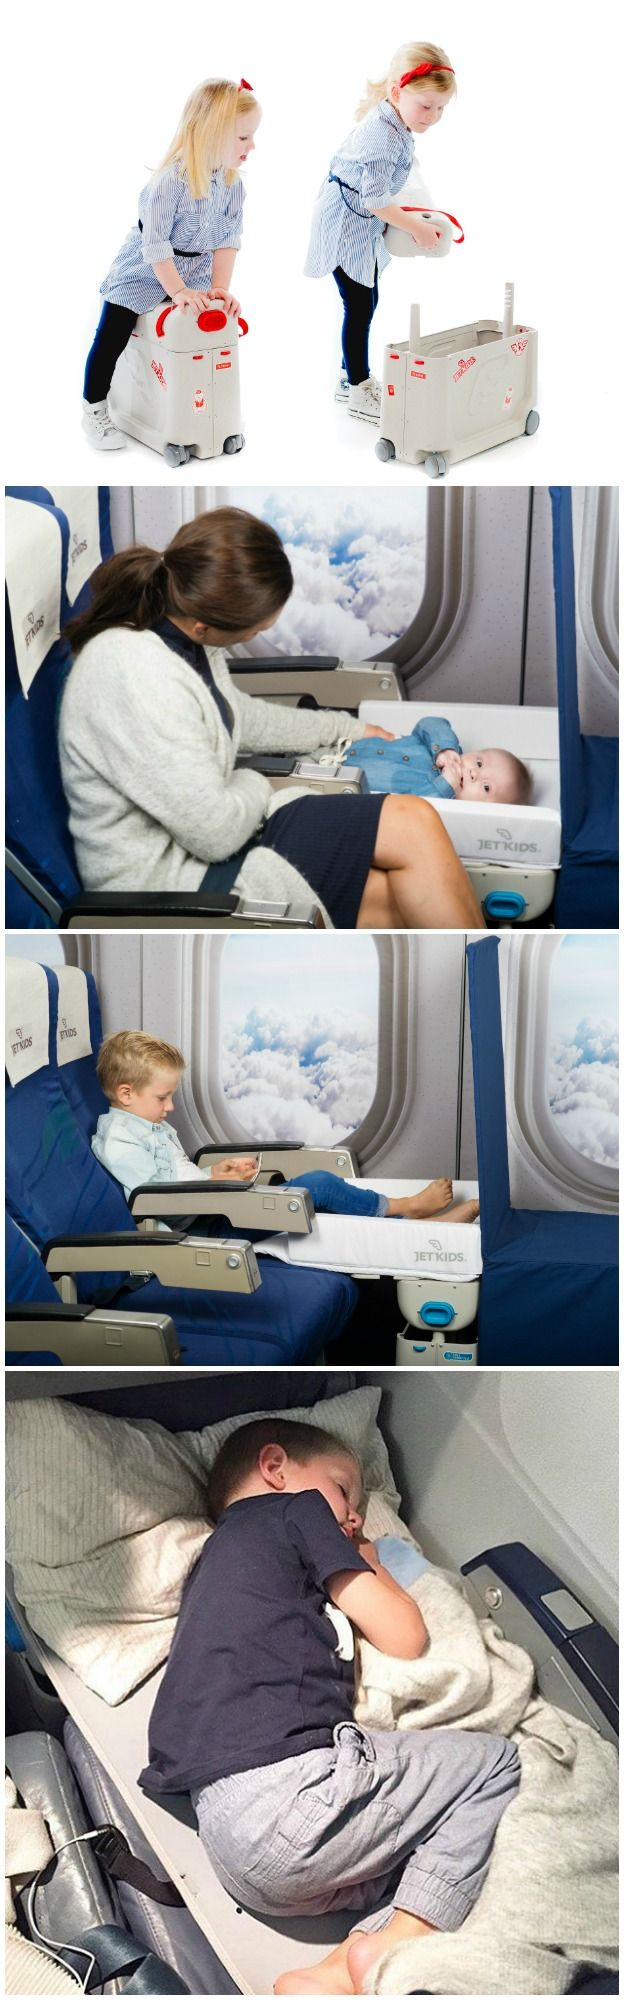 BedBox by JetKids. It is your child´s hand luggage, ride-on suitcase and inflight bed, in the very same box.